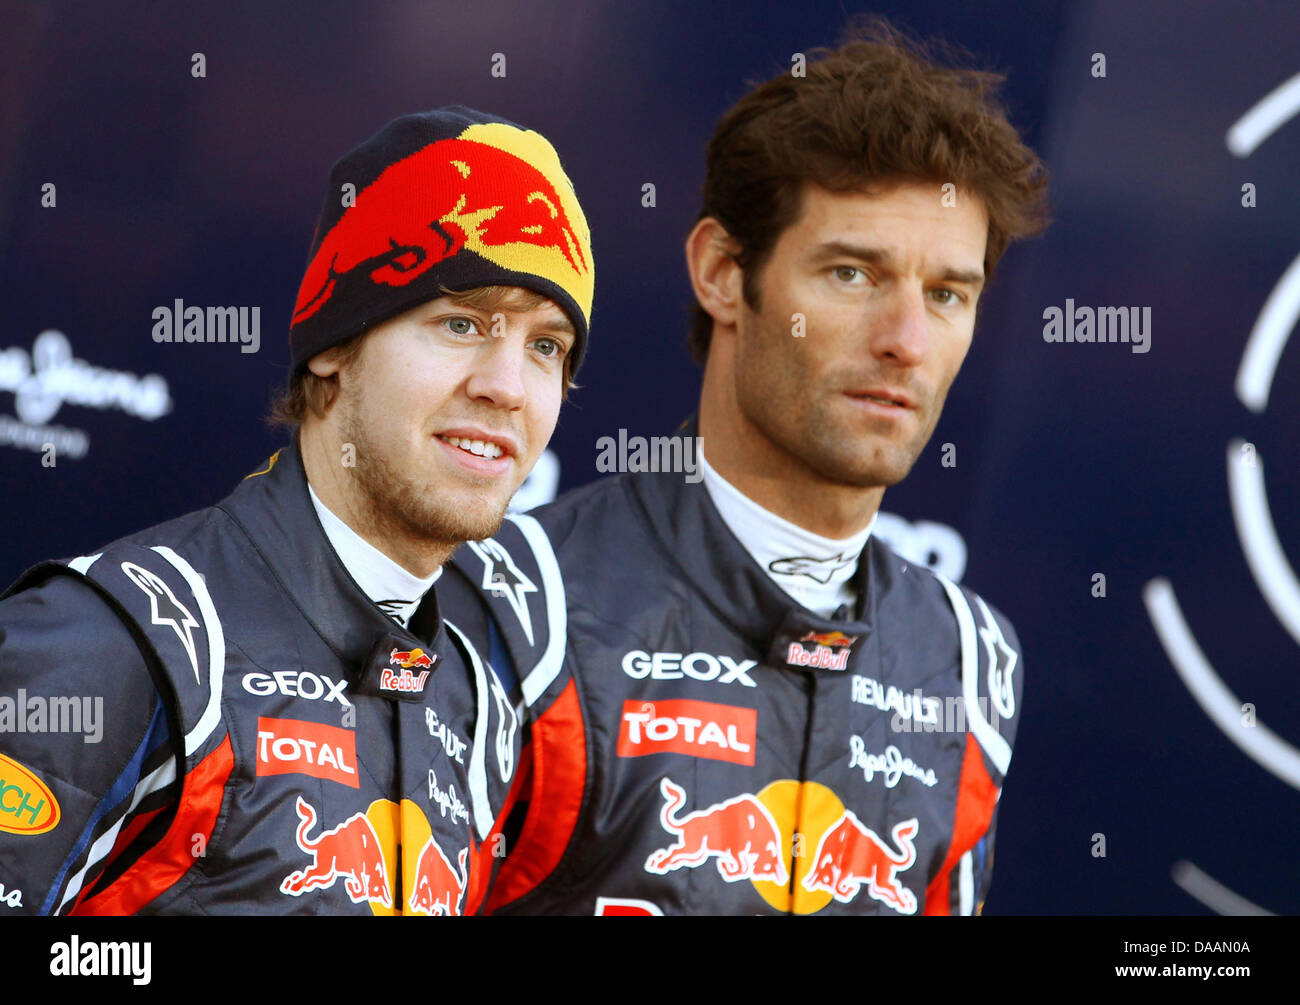 4bd0b401134 Australian Formula One driver Mark Webber (R) of Red Bull Racing and his  German compatriot Sebastain Vettel (L) smile during test drives in  Valencia